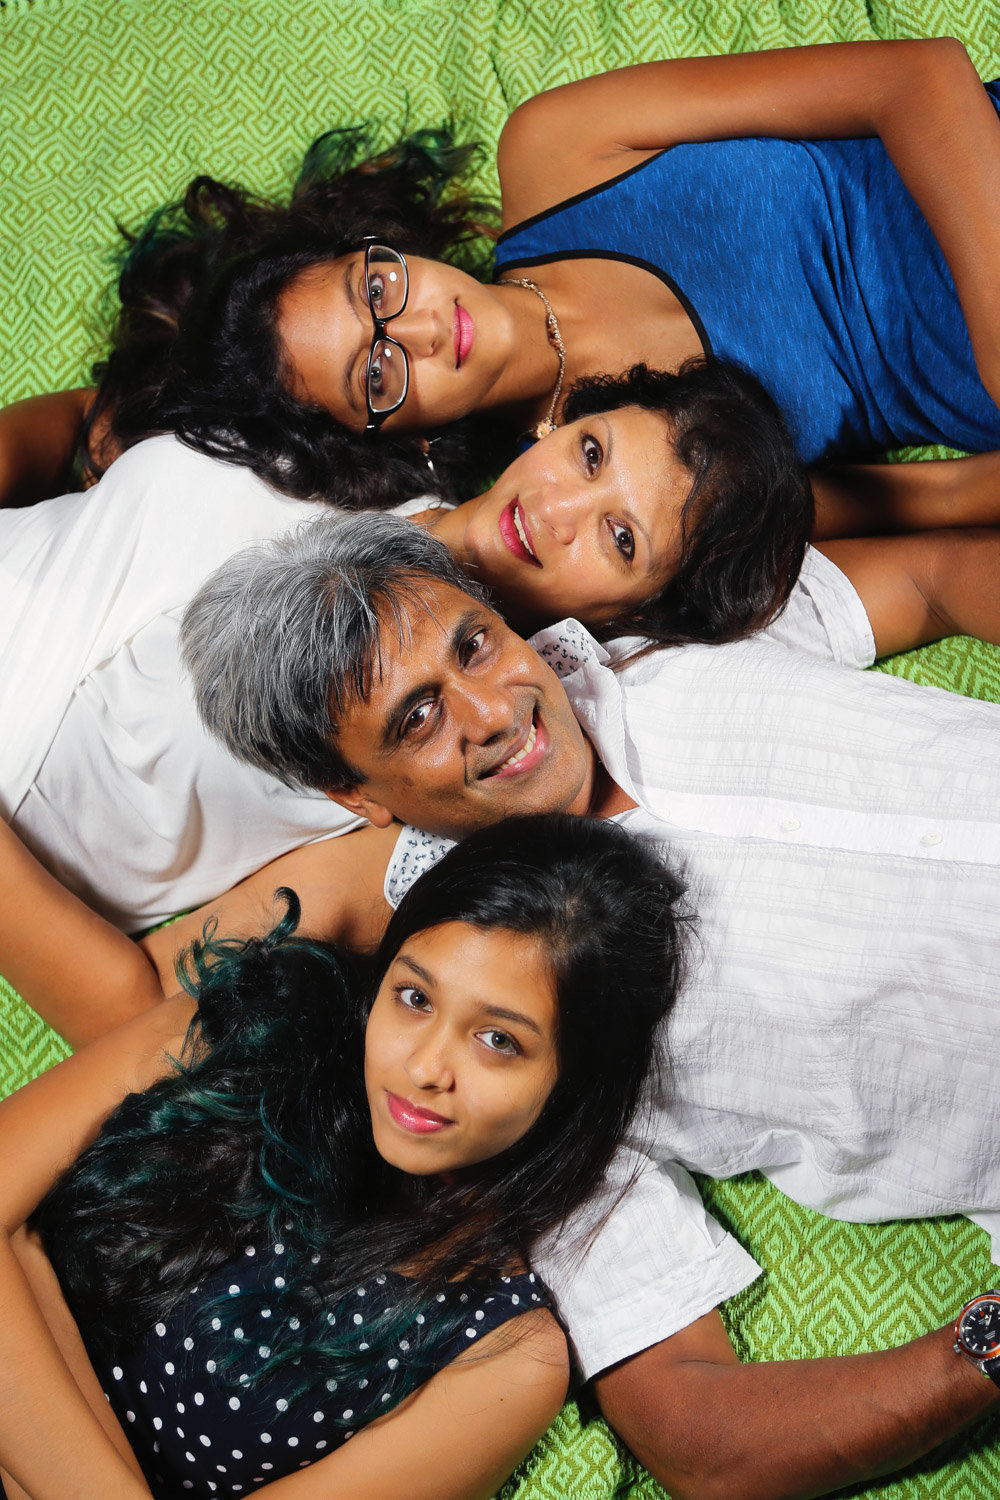 Family portrait of mom, dad, and two daughters. Photo by Ross Photography, Trinidad, W.I..